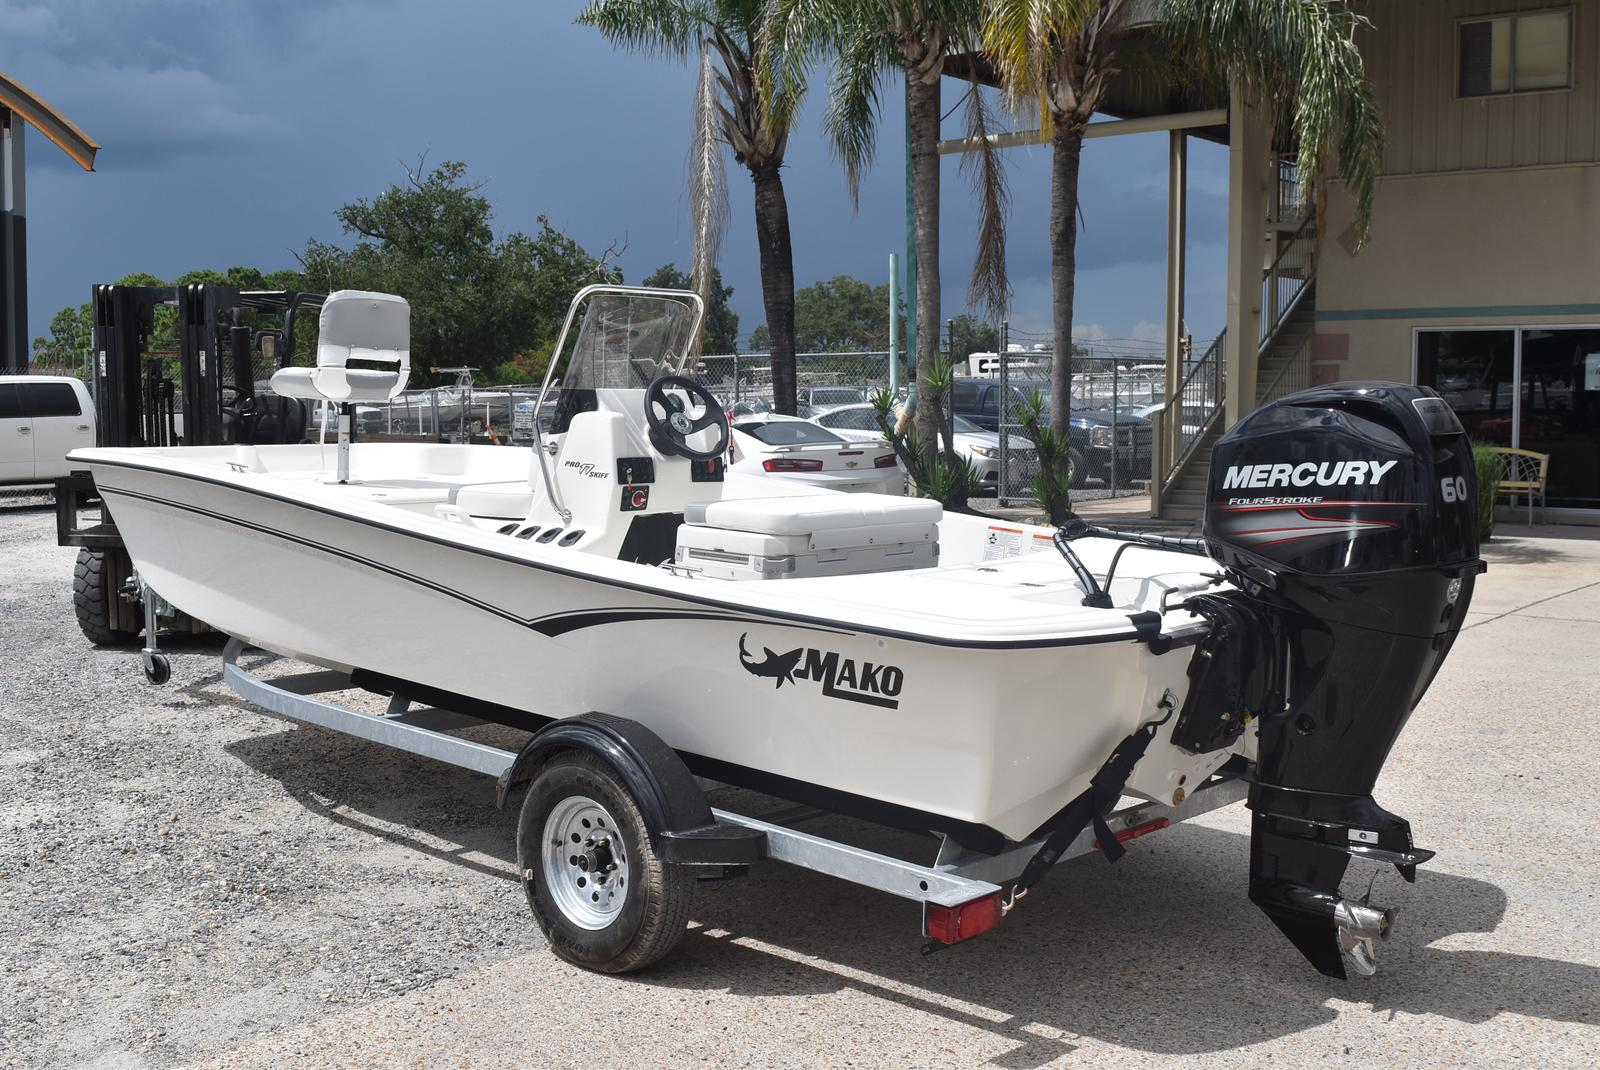 2020 Mako boat for sale, model of the boat is Pro Skiff 17, 75 ELPT & Image # 231 of 702